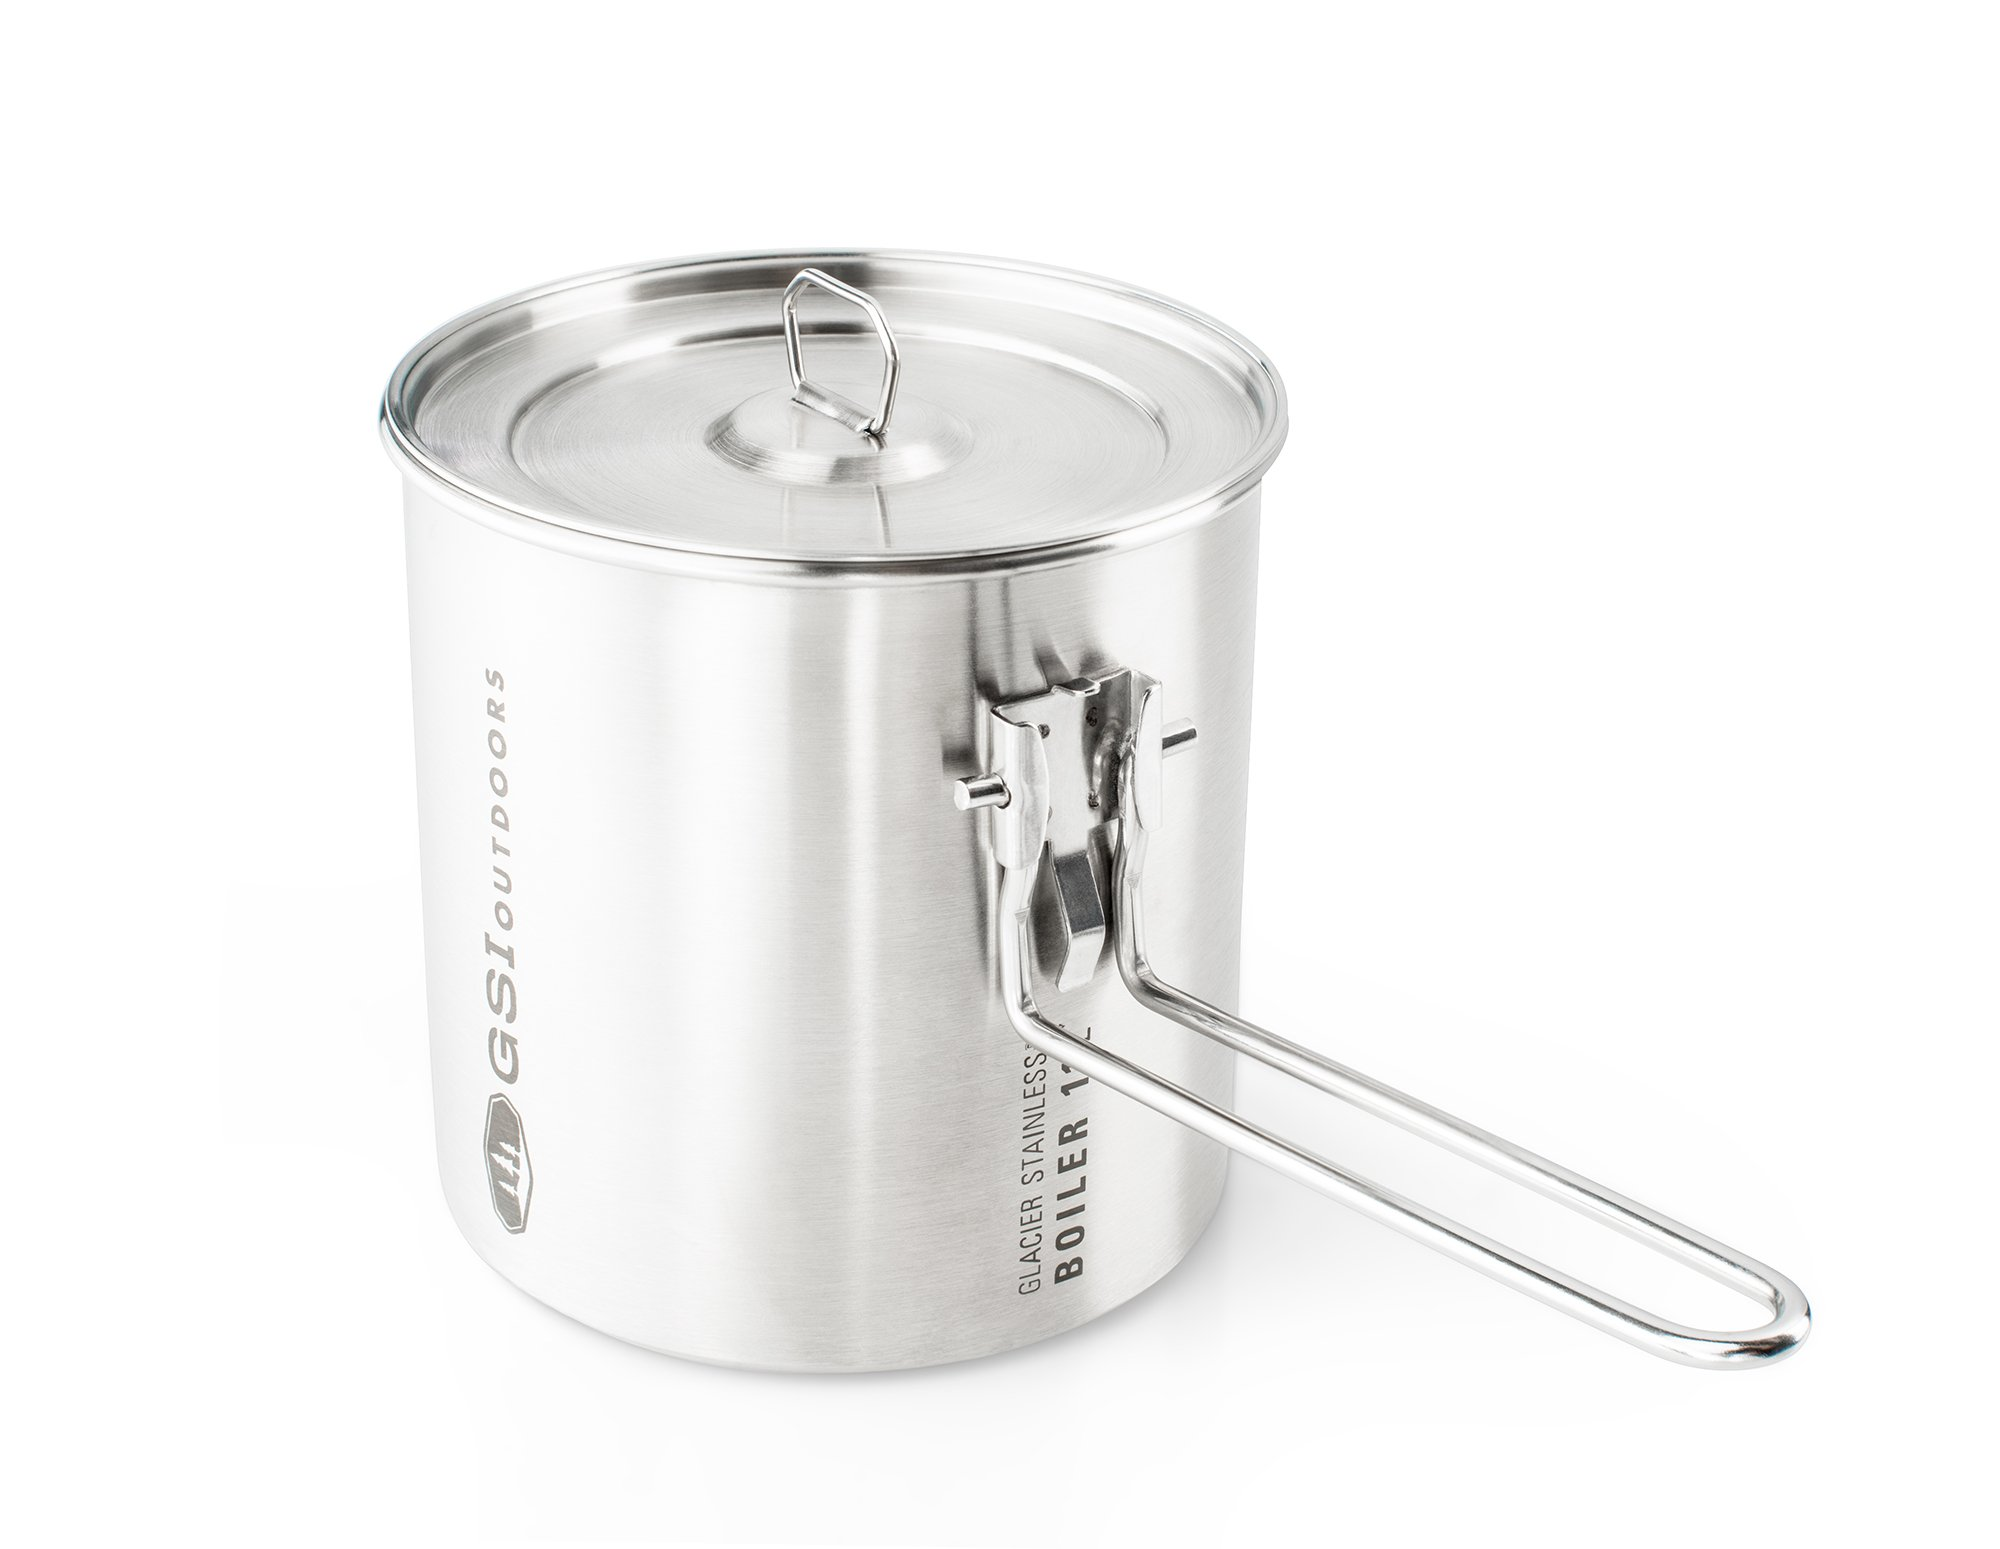 GSI Outdoors Glacier Stainless 1l Boiler